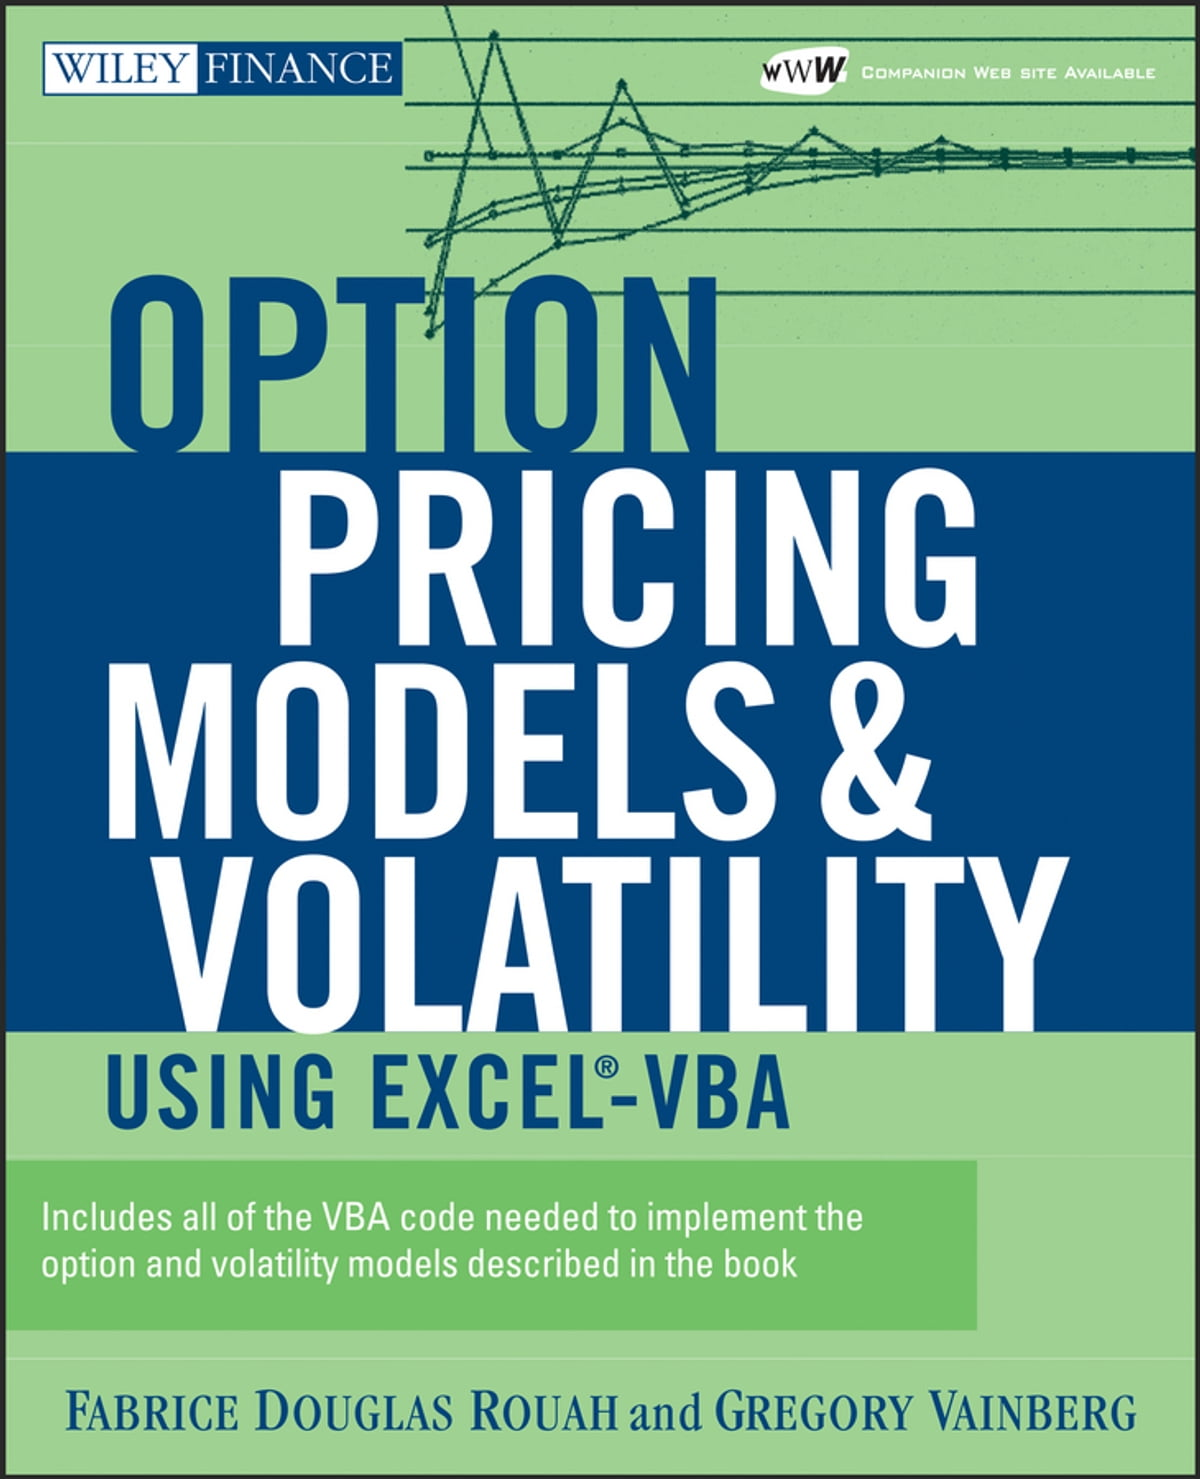 Option pricing models and volatility using excel vba ebook by fabrice d rouah 9781118429204 rakuten kobo